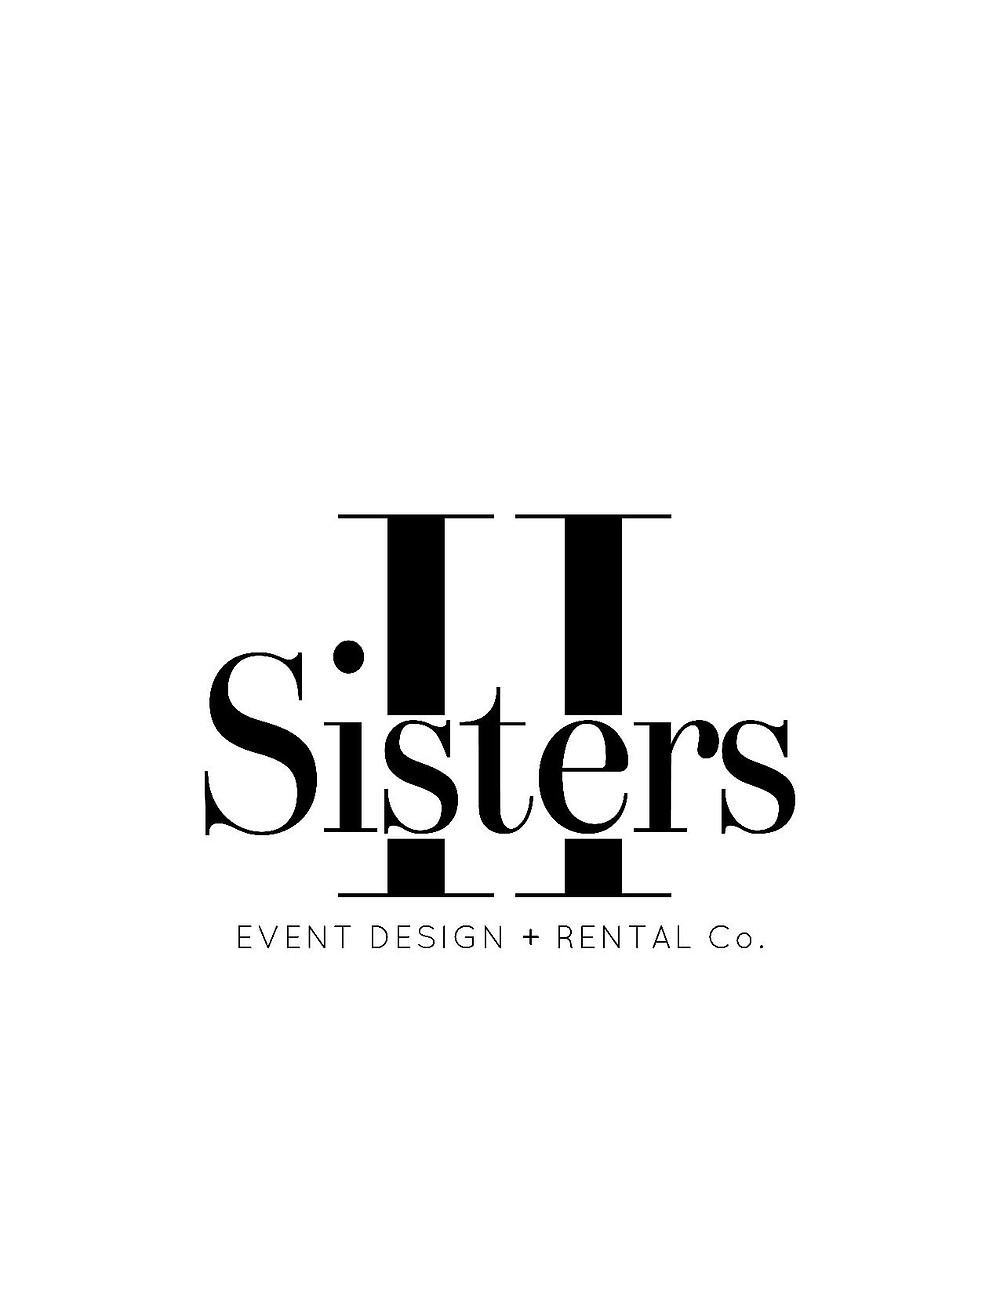 Central Illinois Event Rental and Design Company